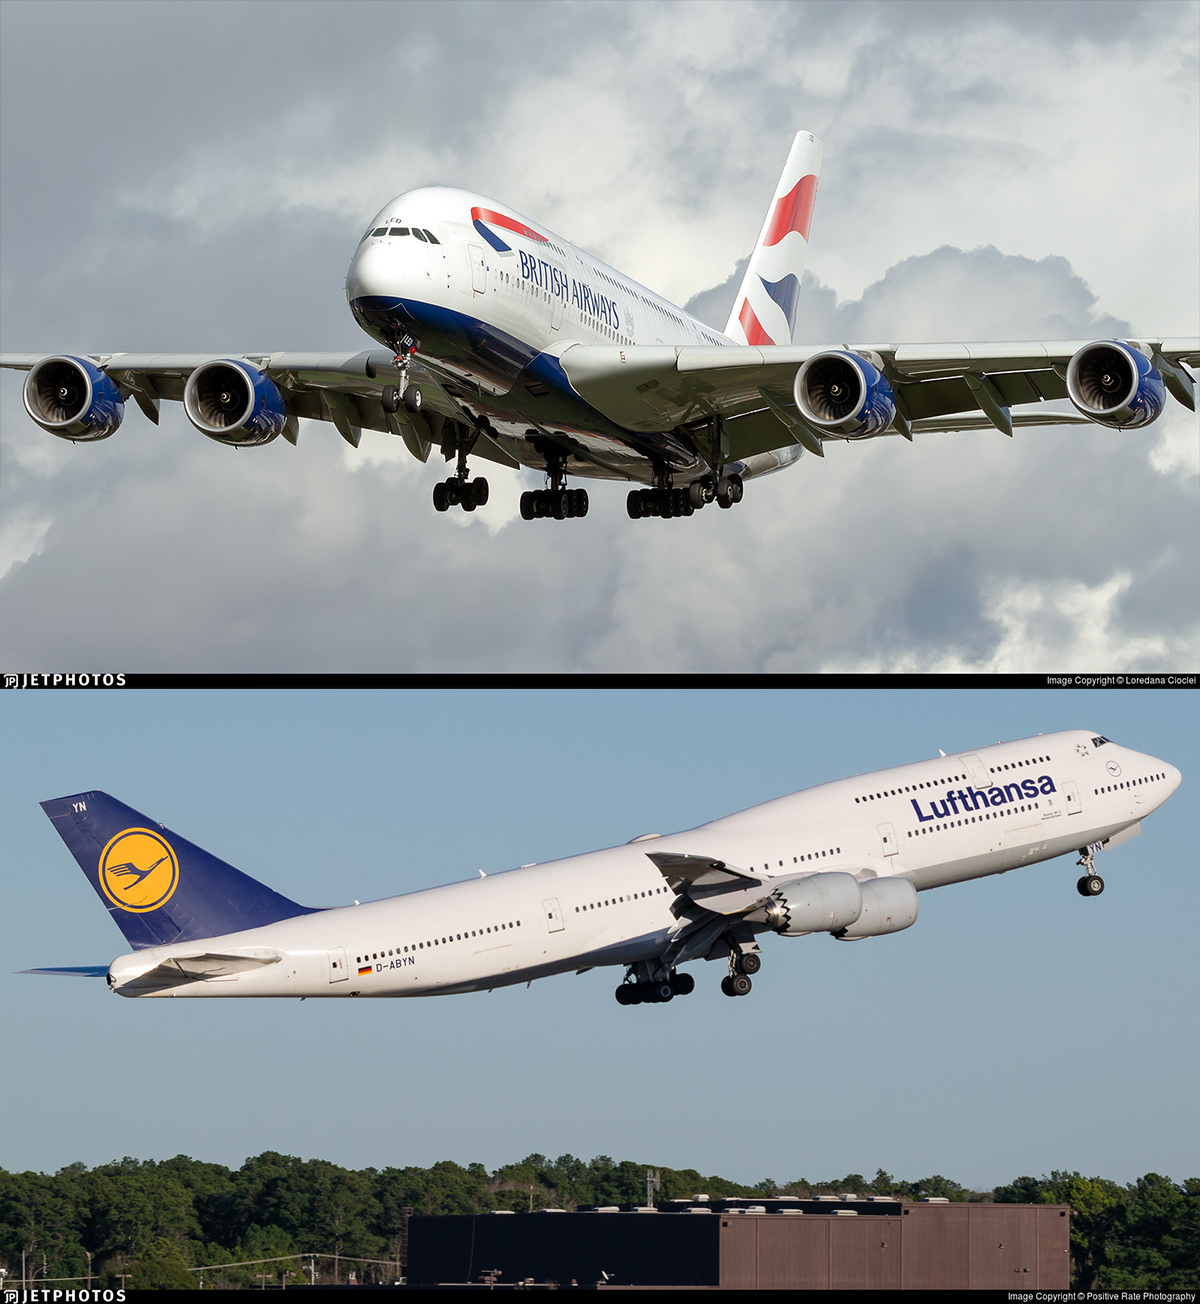 A380 and 747